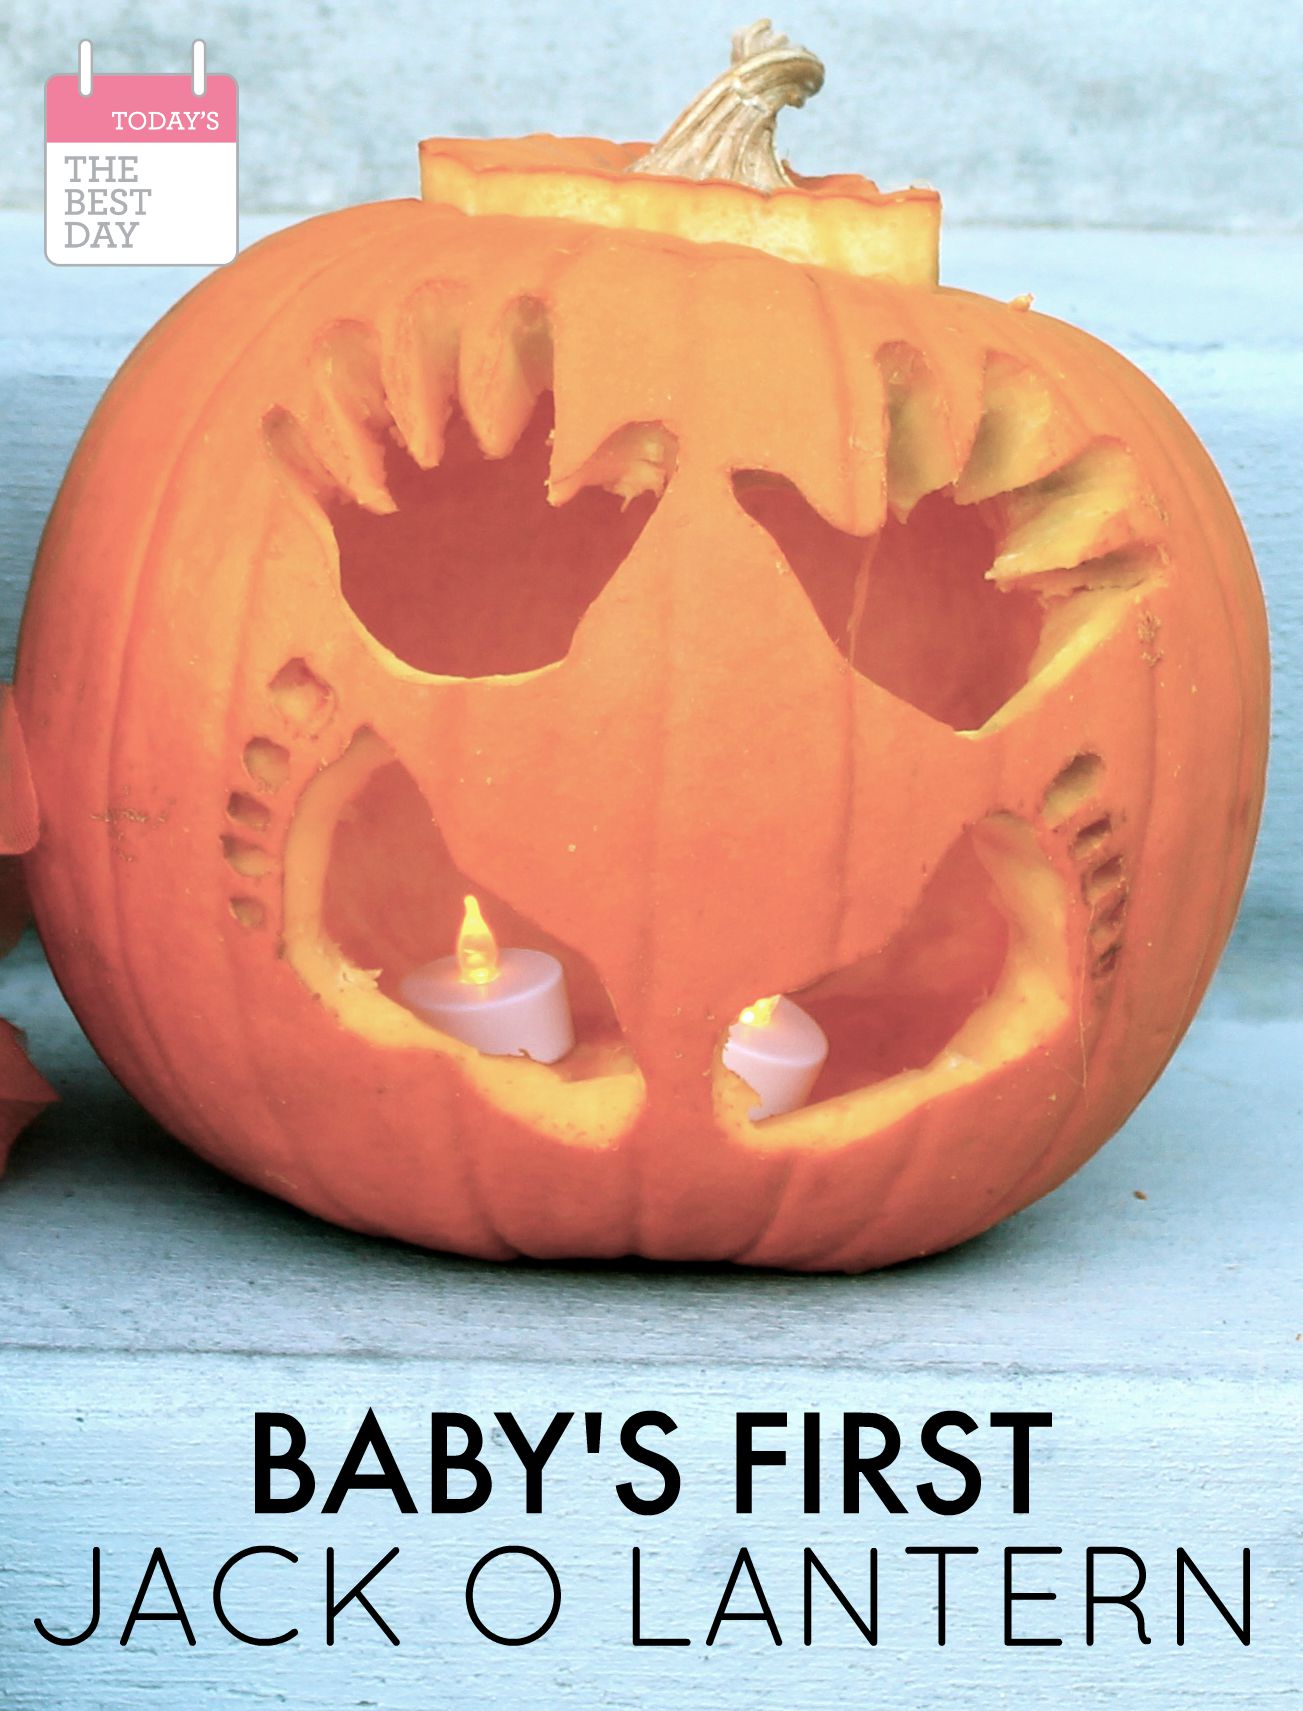 Baby's First Halloween Jack-O-Lantern - Today's the Best Day